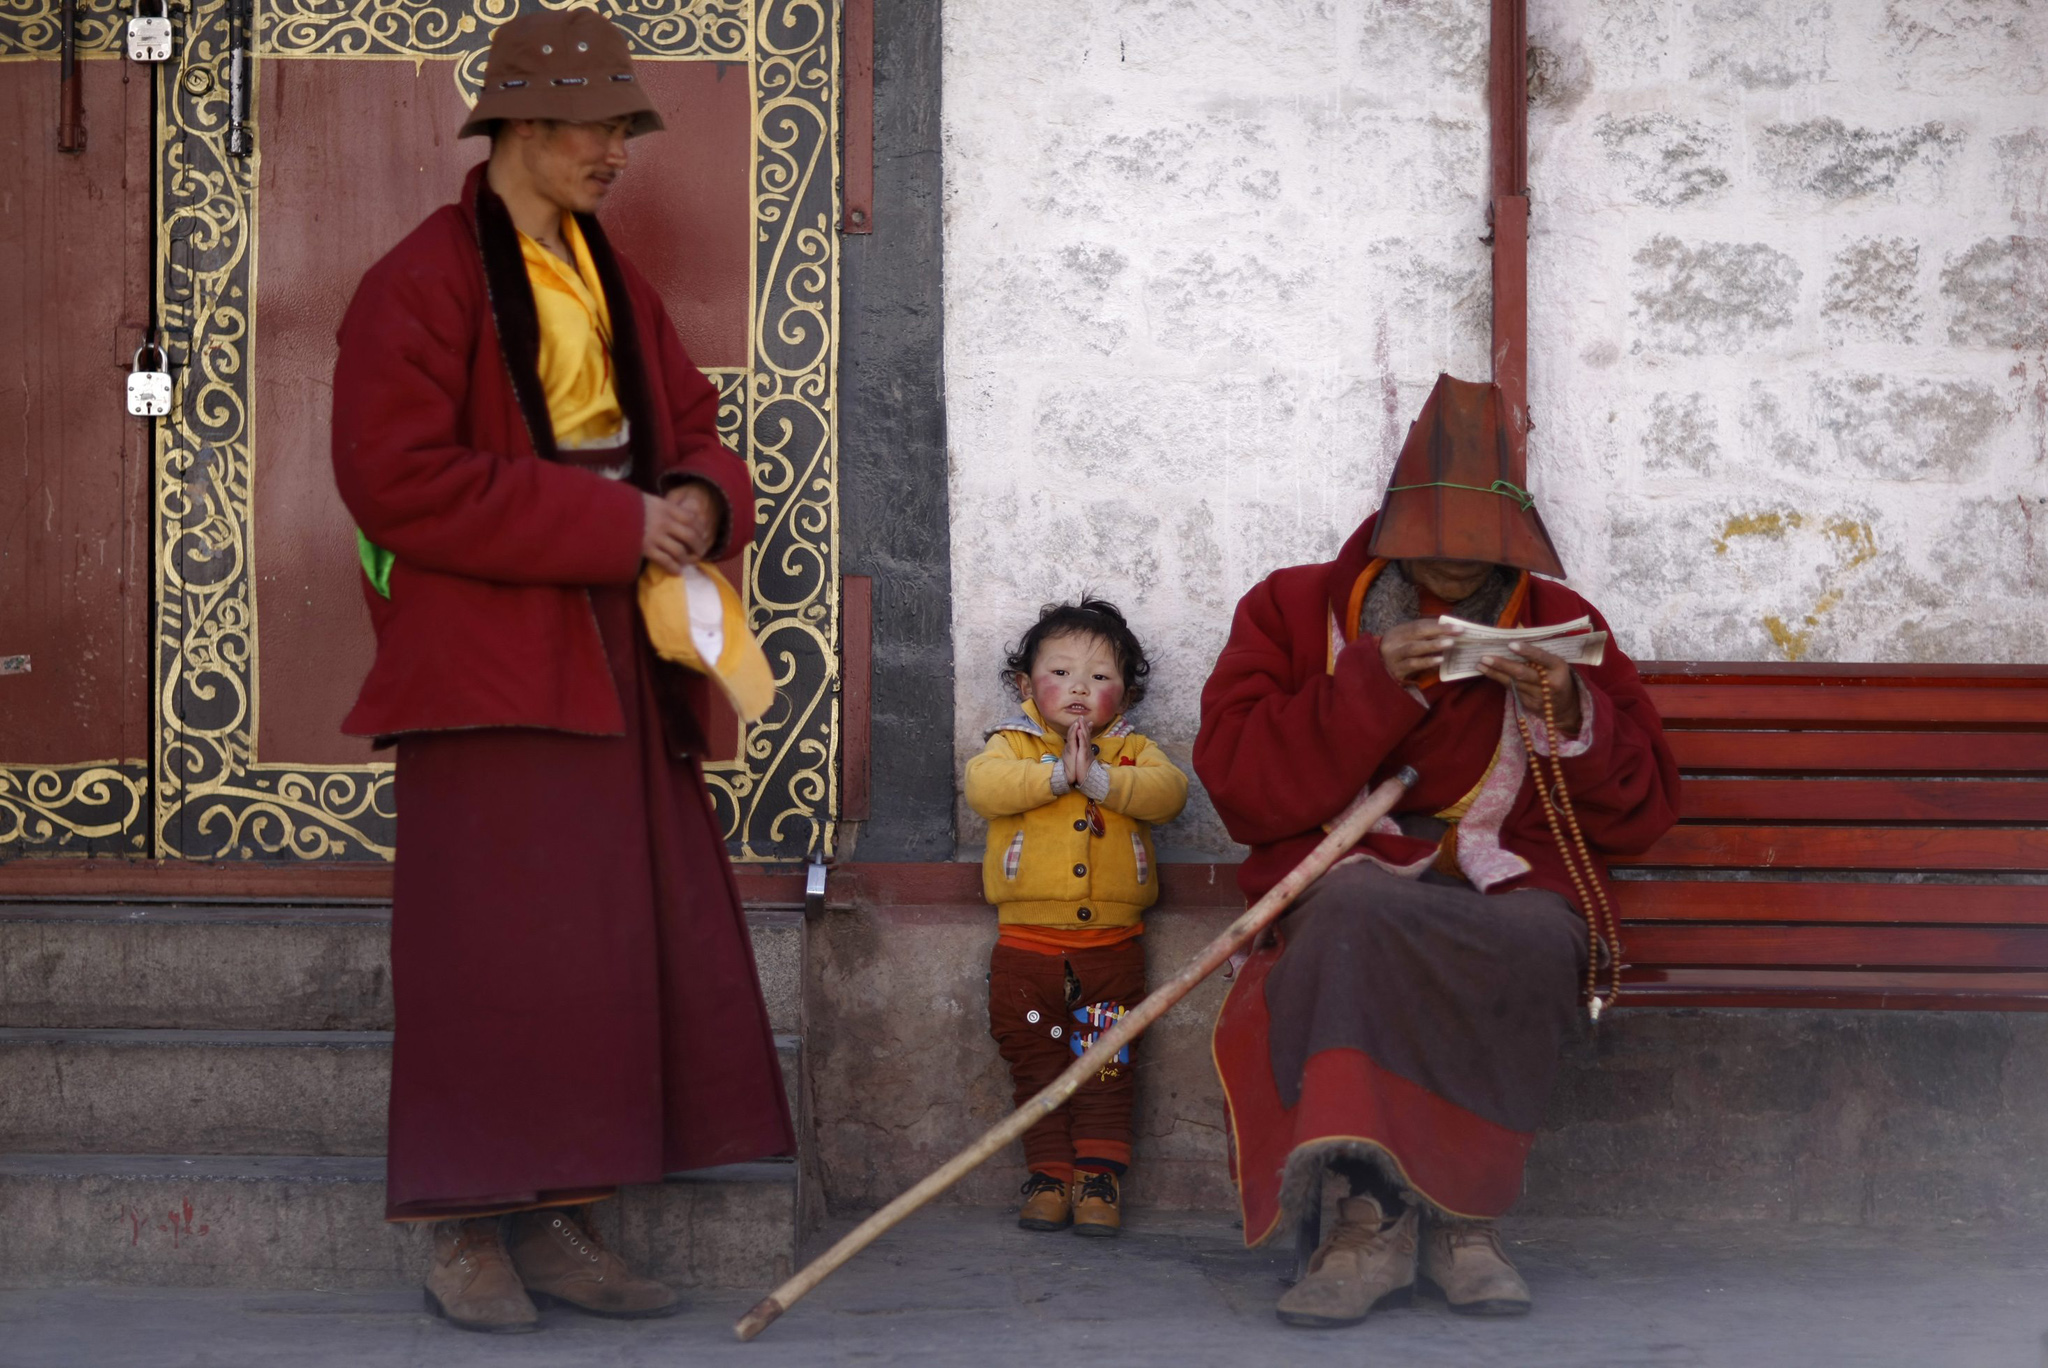 A boy puts his palms together as he rests with his family outside Jokhang Monastery in Lhasa, Tibet autonomous region, March 4, 2014.